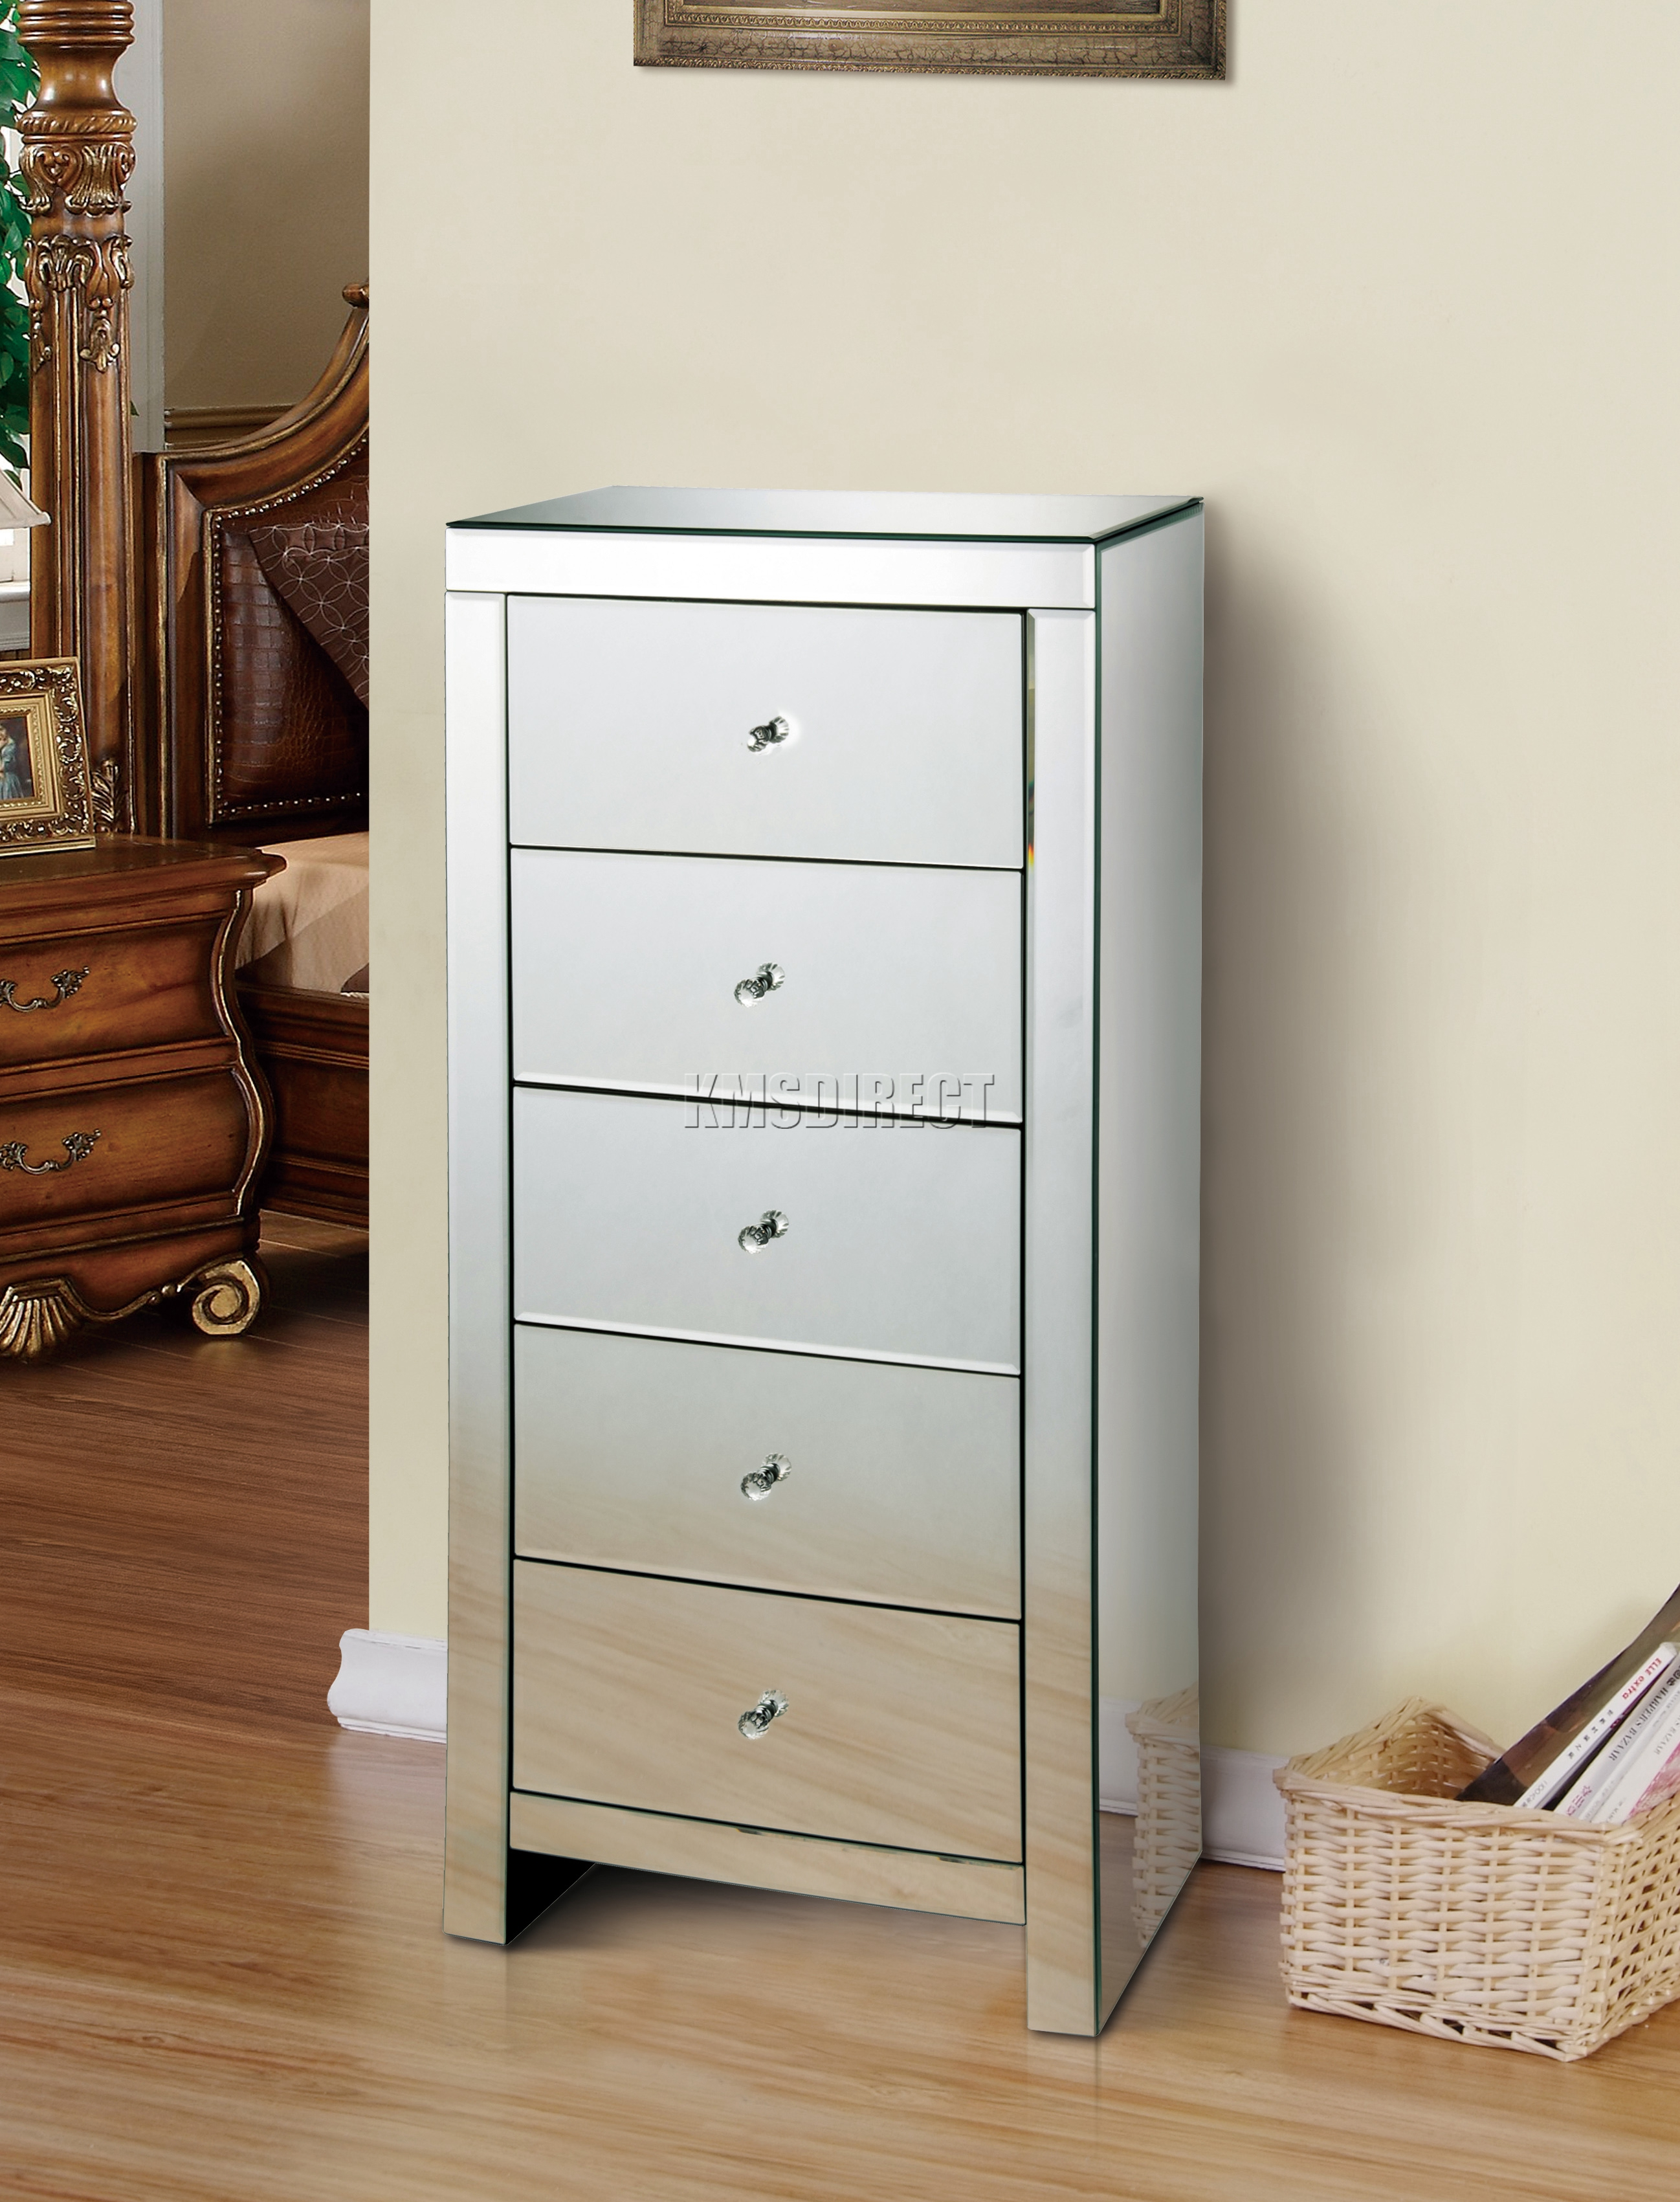 Mirrored Furniture Foxhunter Mirrored Furniture Glass 5 Drawer Tallboy Chest Cabinet